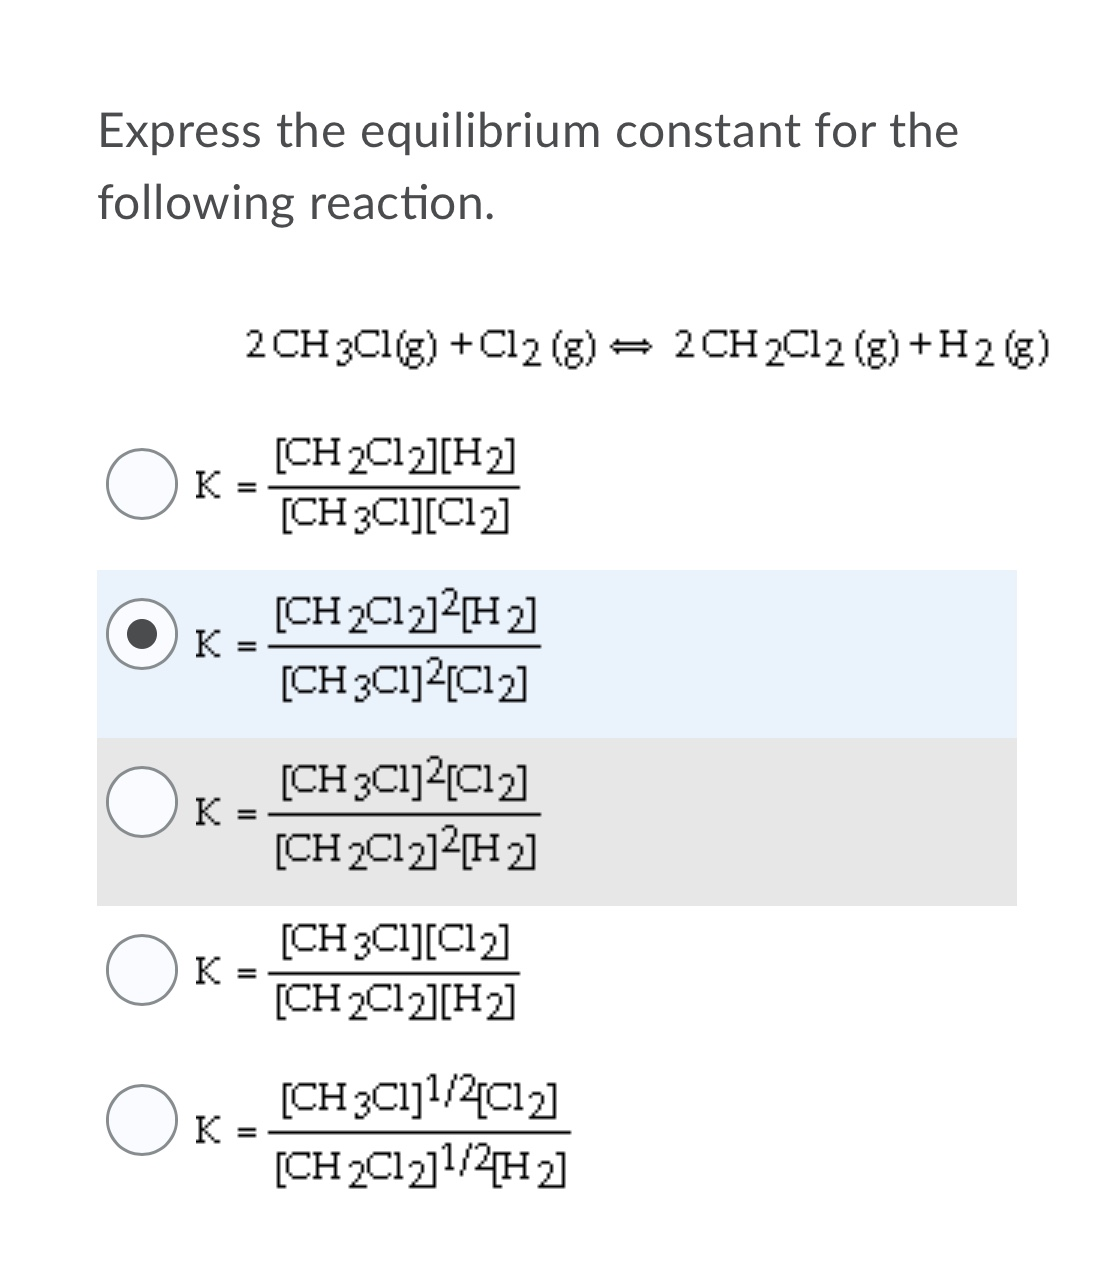 Express the equilibrium constant for the following reaction. 2 CH 2C12 (g) +H2 (g) 2 CH 3C1(g) +C12 (g) [CH 2C12][H2] [CH 3CI][Cl2] (CH2C12]?{H2] к [CH3C1]2[Cl2] (CH3C1]?{C12] [CH 2C12]2[H2] [CH 3CI][Cl2] K [CH 2C12][H2] [CH3C1]1/2{Cl2] к %3D [CH2C121/2на